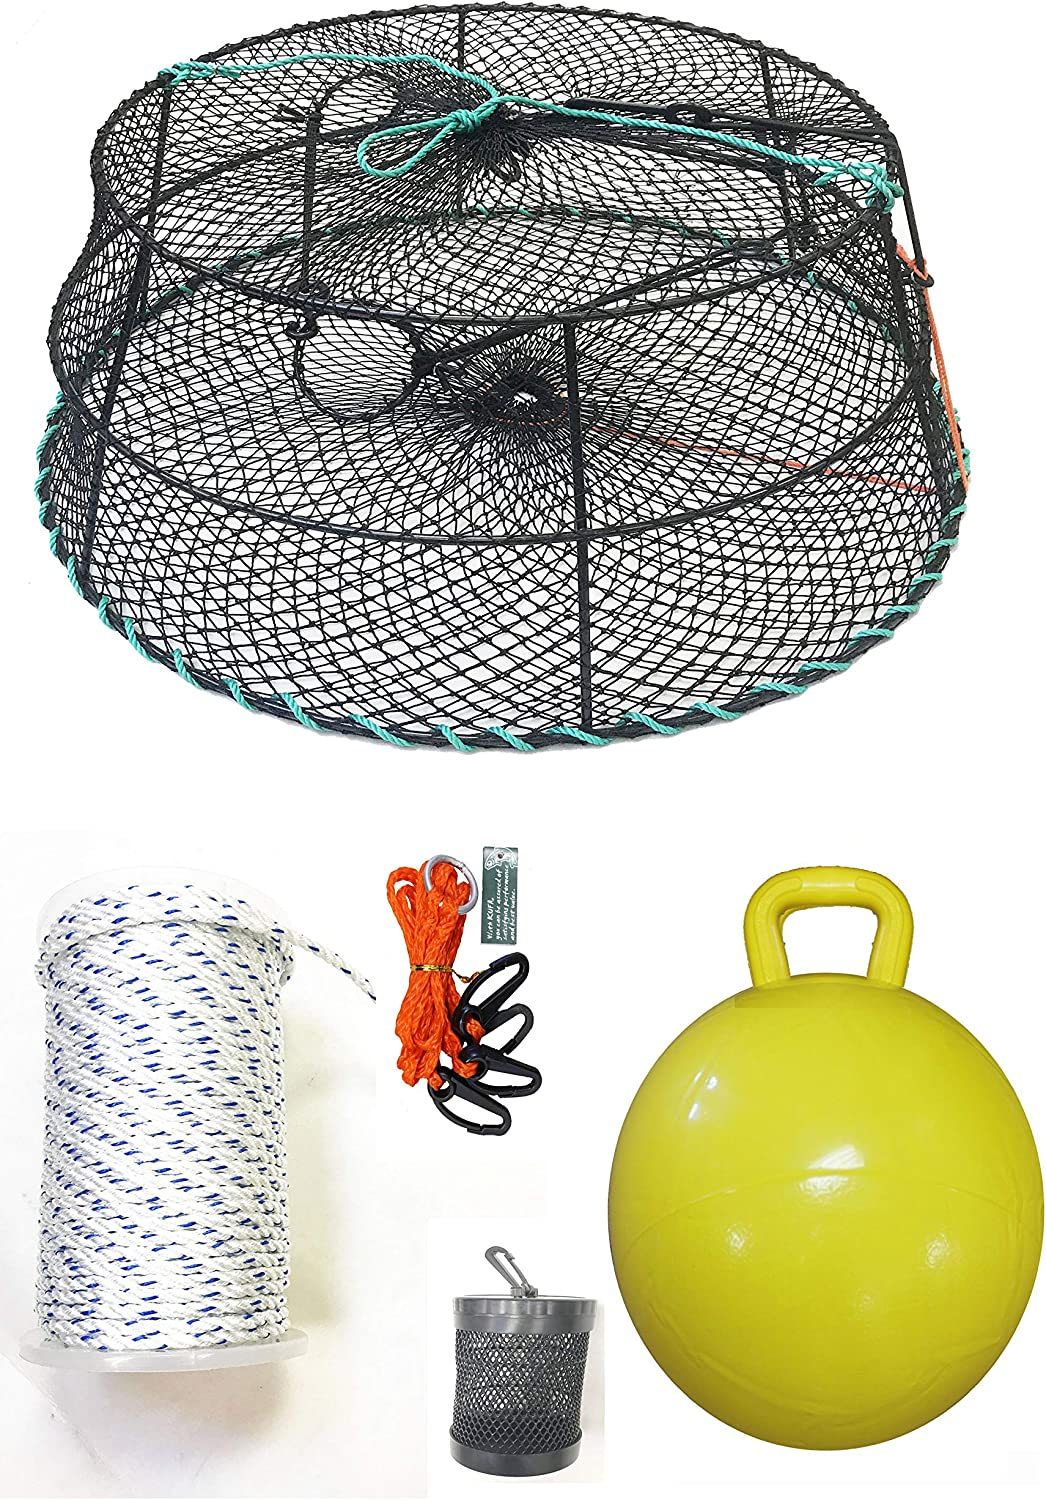 KUFA Sports Vinyl Coated Tower Prawn Outlet ☆ Free Shipping Japan Maker New Style with Trap